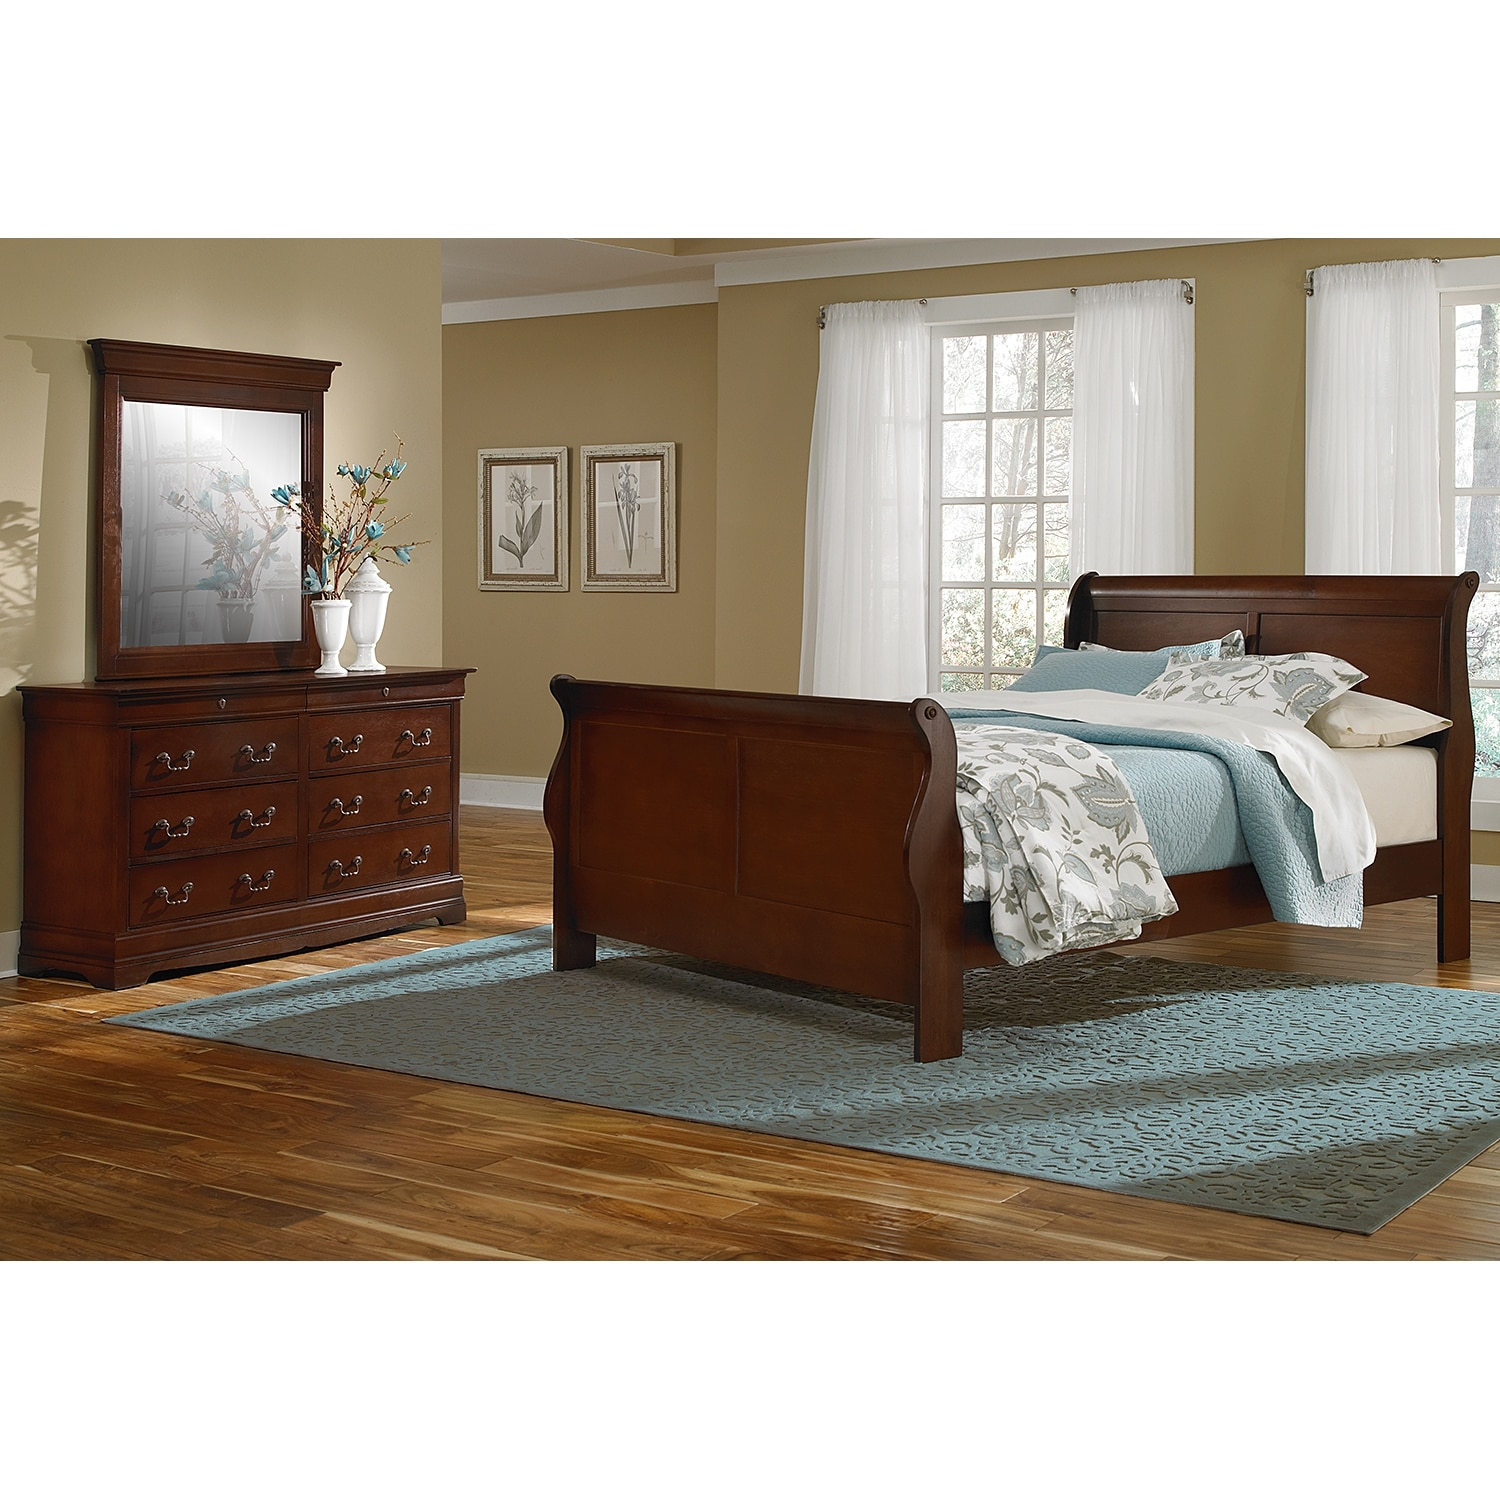 Neo Classic Youth 5 Piece Twin Bedroom Set Cherry Value City Furniture